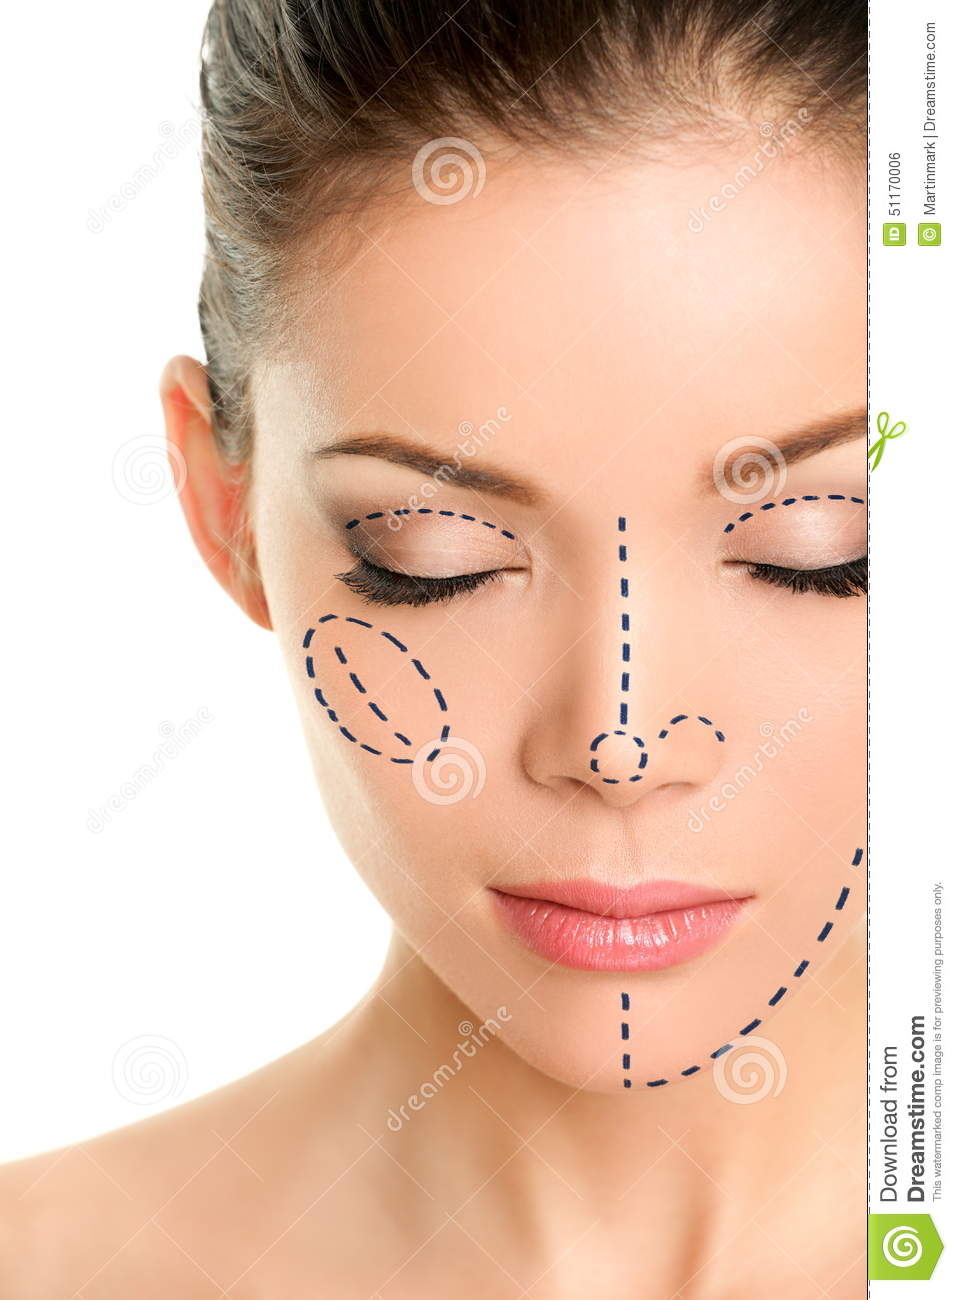 Plastic Surgery Lines On Asian Woman Face Stock Photo - Image of